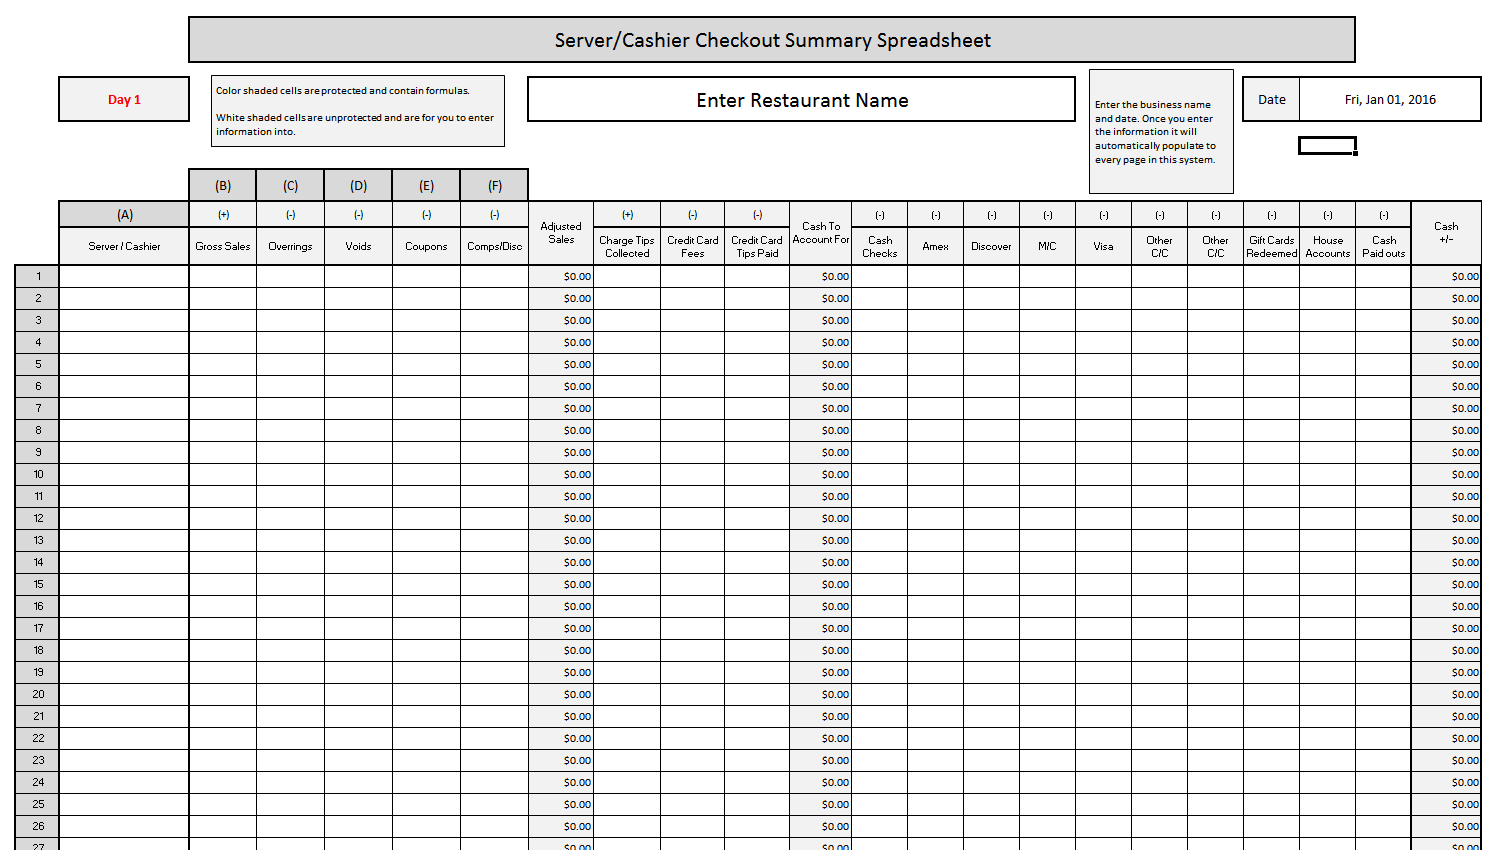 Server Cash Checkout Spreadsheet